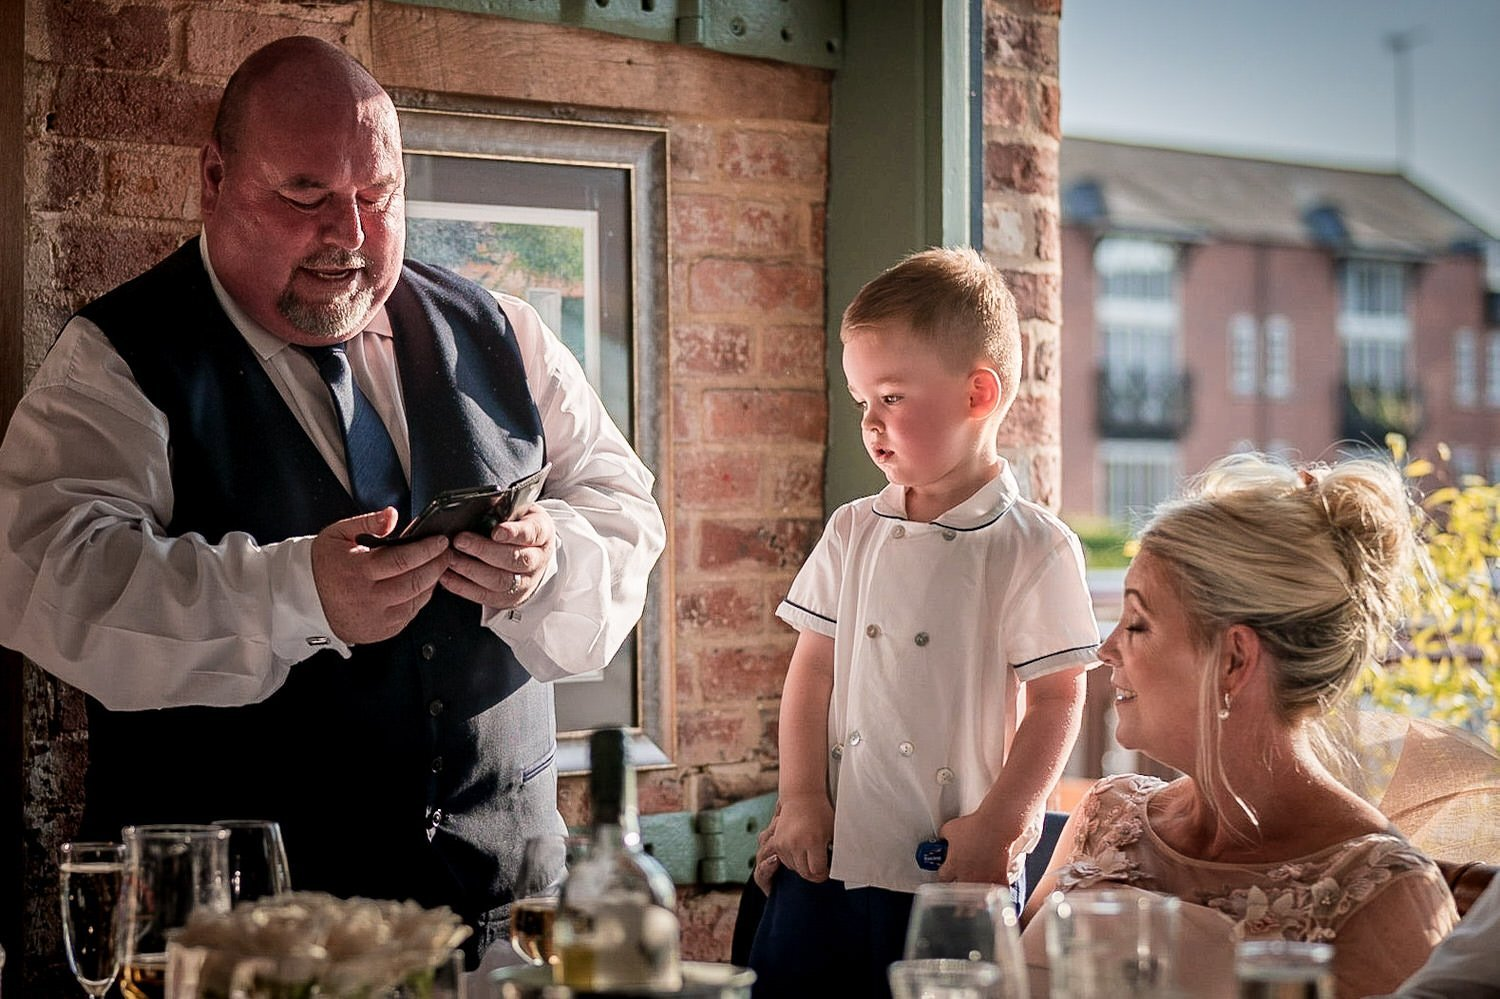 The Waterfront Market Harborough Weddings Photography step father of the bride giving a speech for his grandson who is looking on slightly confused